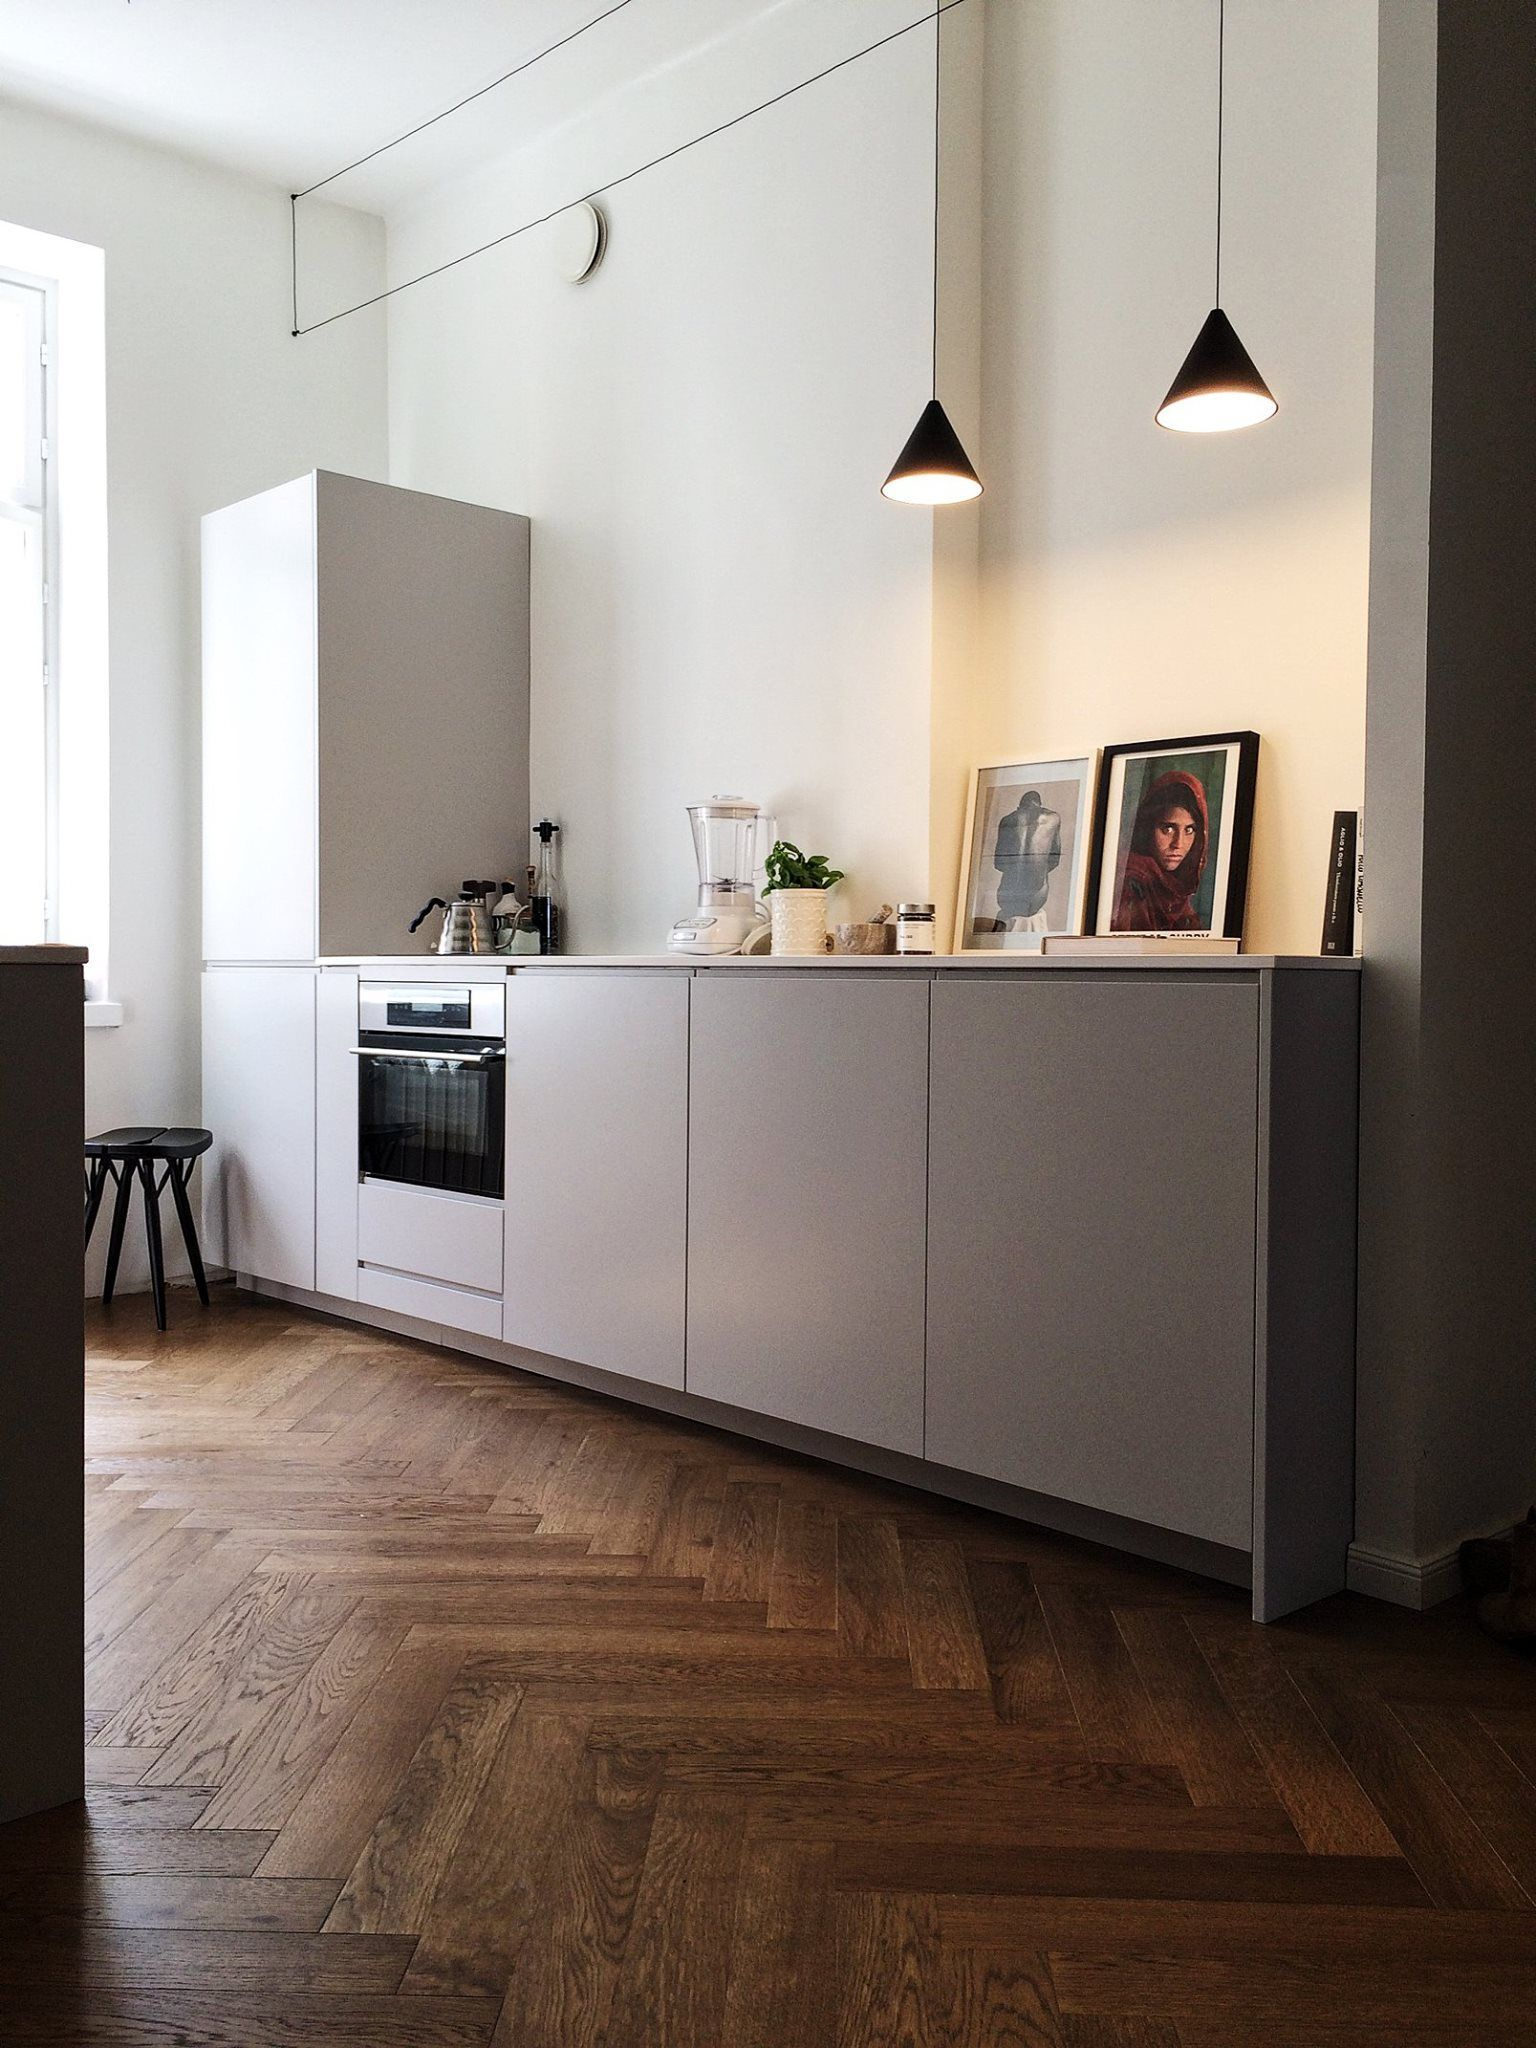 Pin by Chayanne Nortje on Neutrals in Pinterest Kitchen